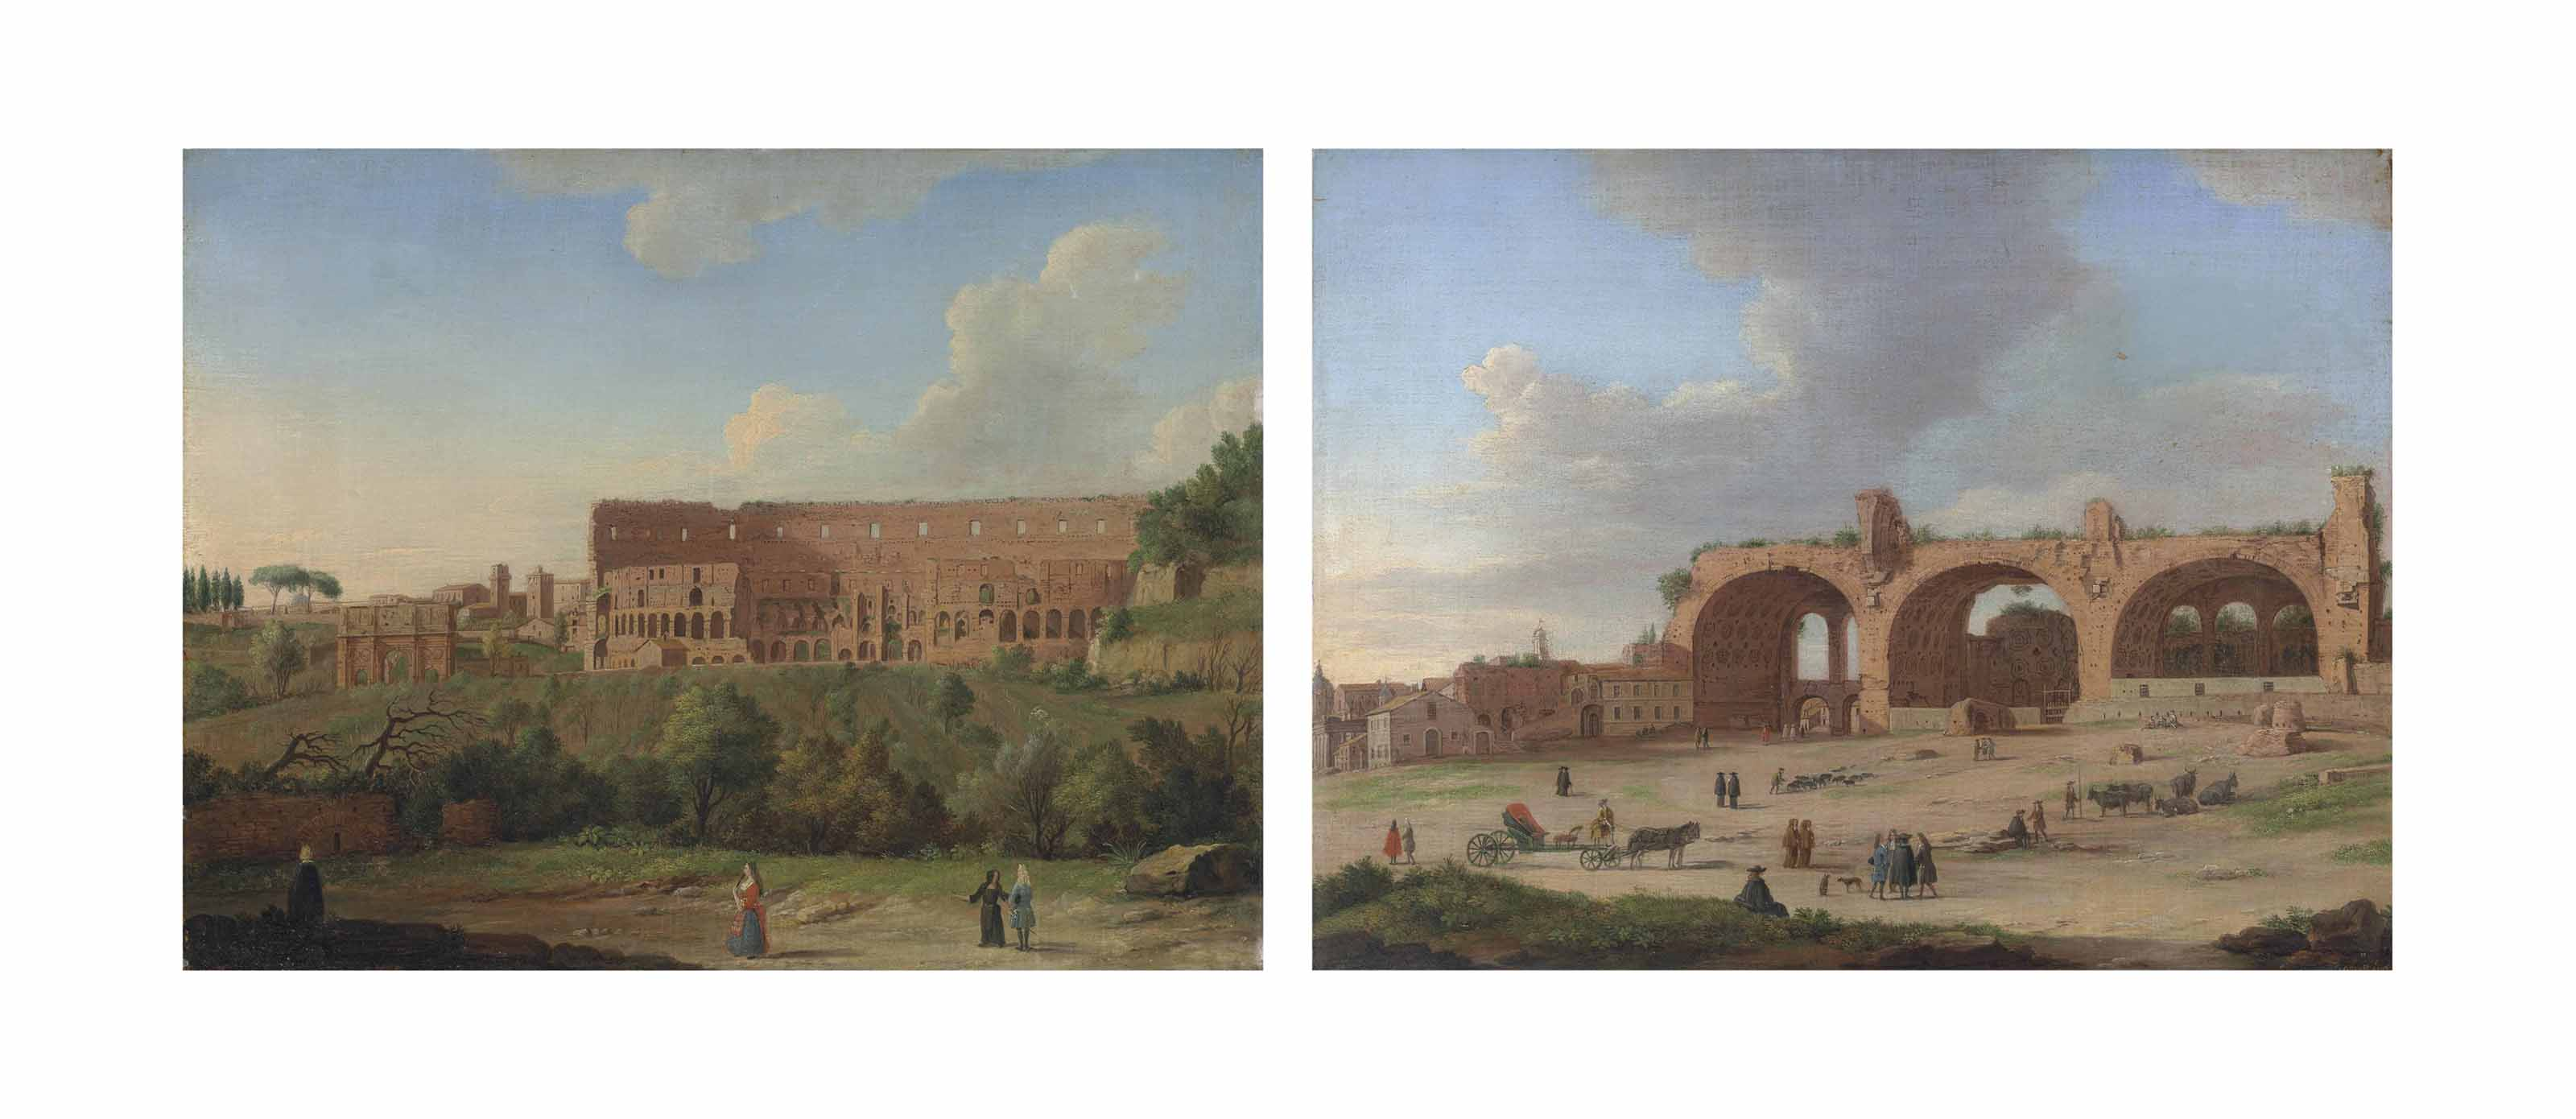 The Colosseum, Rome, with the Arch of Constantine and figures in the foreground; and The ruins of the Basilica of Maxentius, Rome, with elegant figures in the foreground